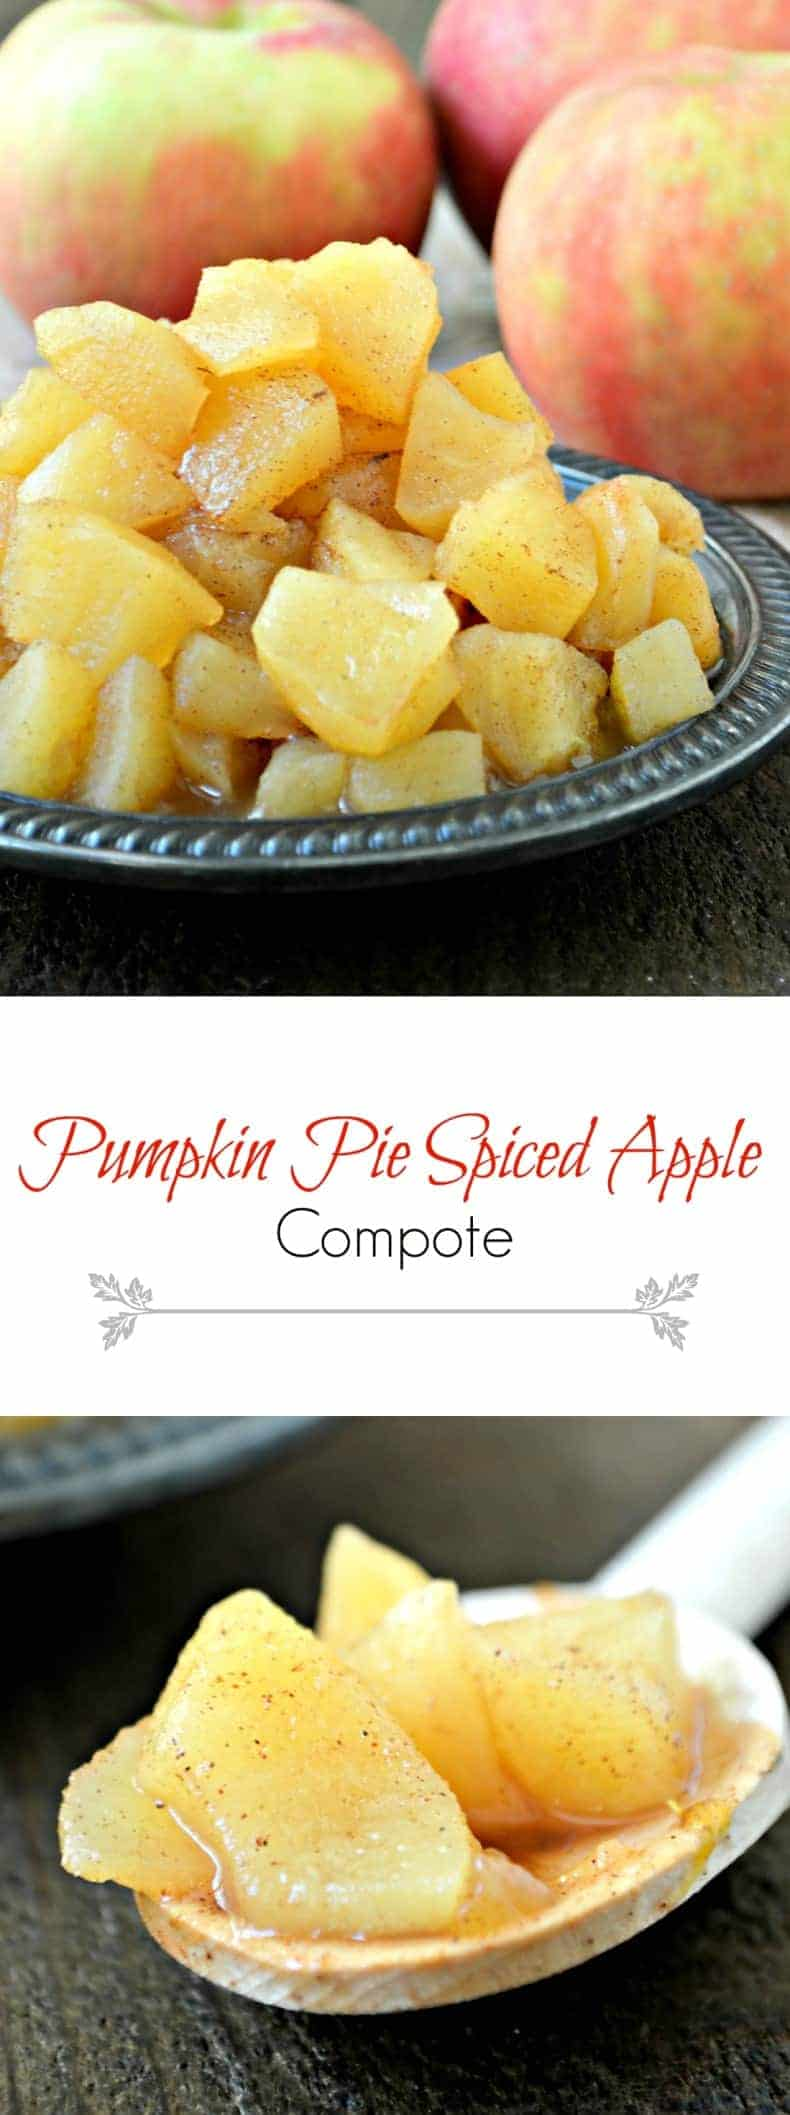 pumpkin pie spiced apple compote recipe